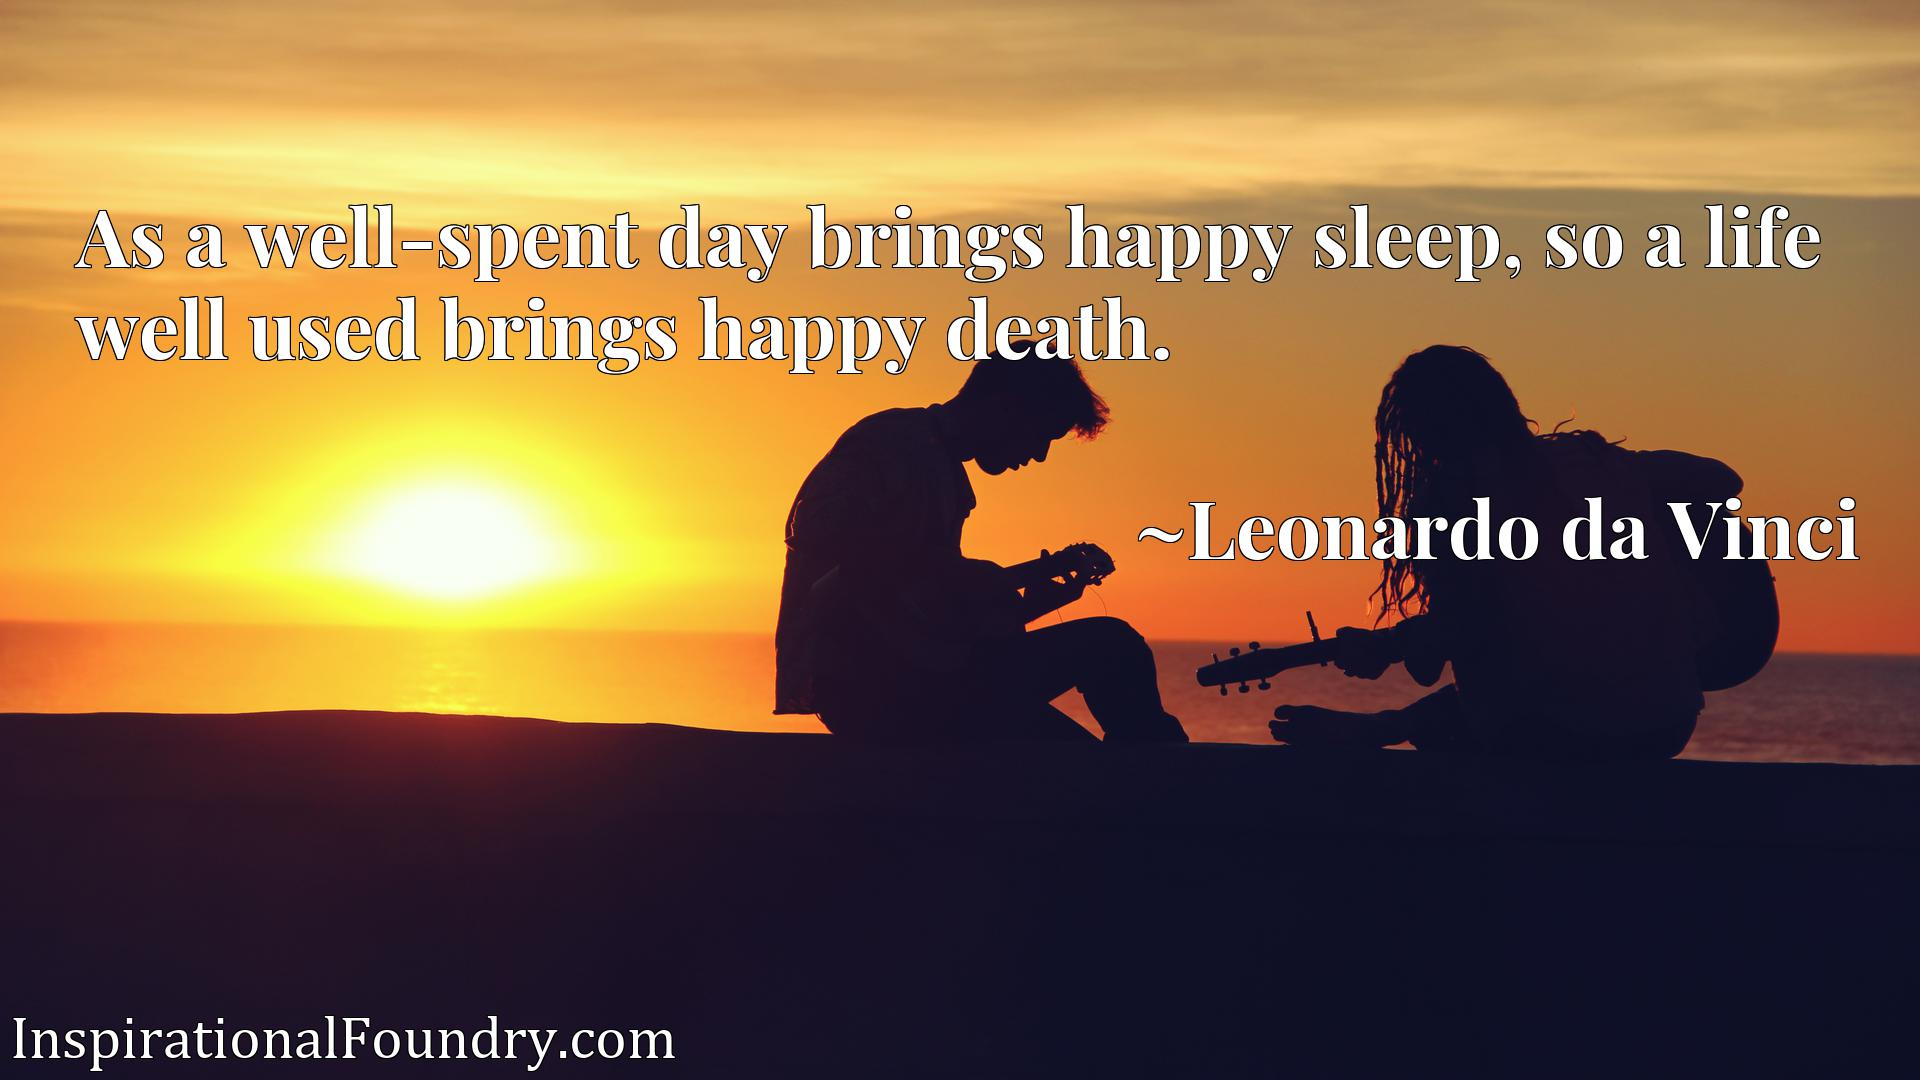 As a well-spent day brings happy sleep, so a life well used brings happy death.